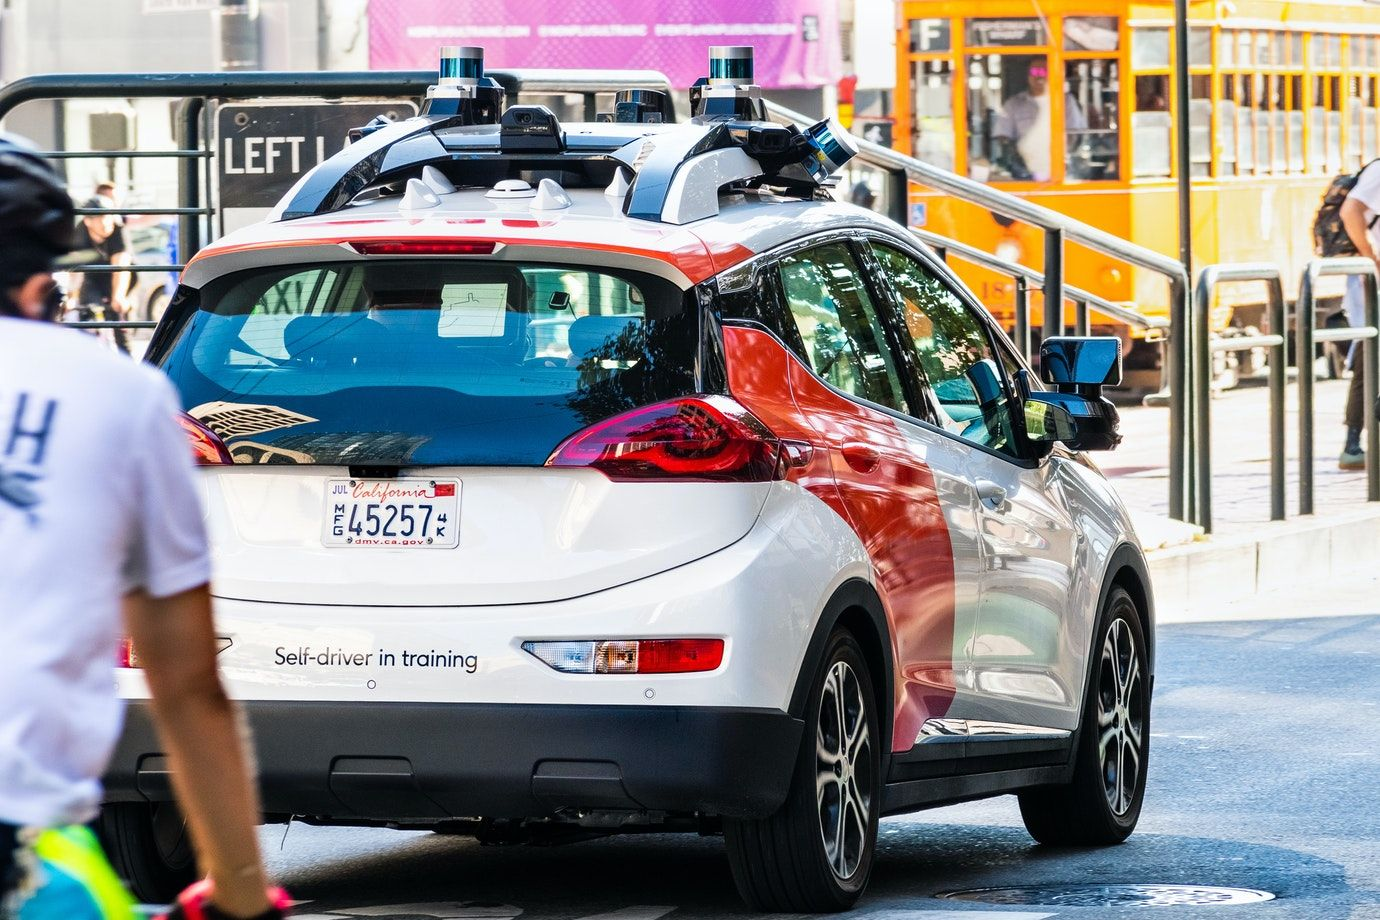 /can-you-react-faster-than-a-self-driving-car-on-5g-networks-2k5n328h feature image